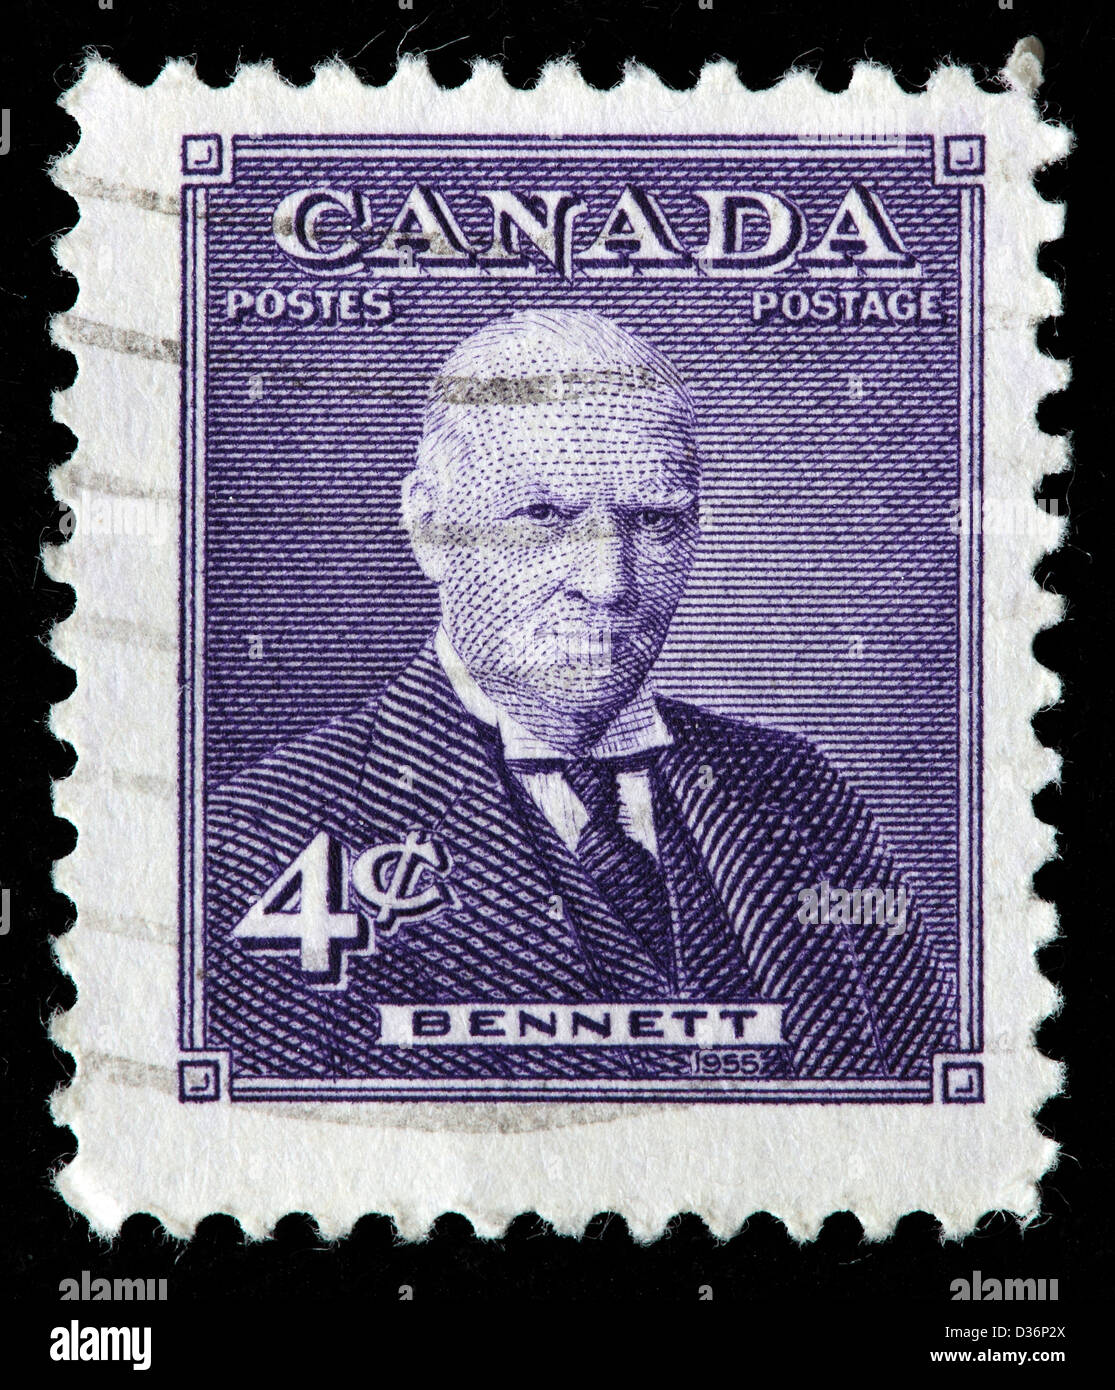 Richard Bedford Bennett Postage Stamp Canada 1955 Stock Photo